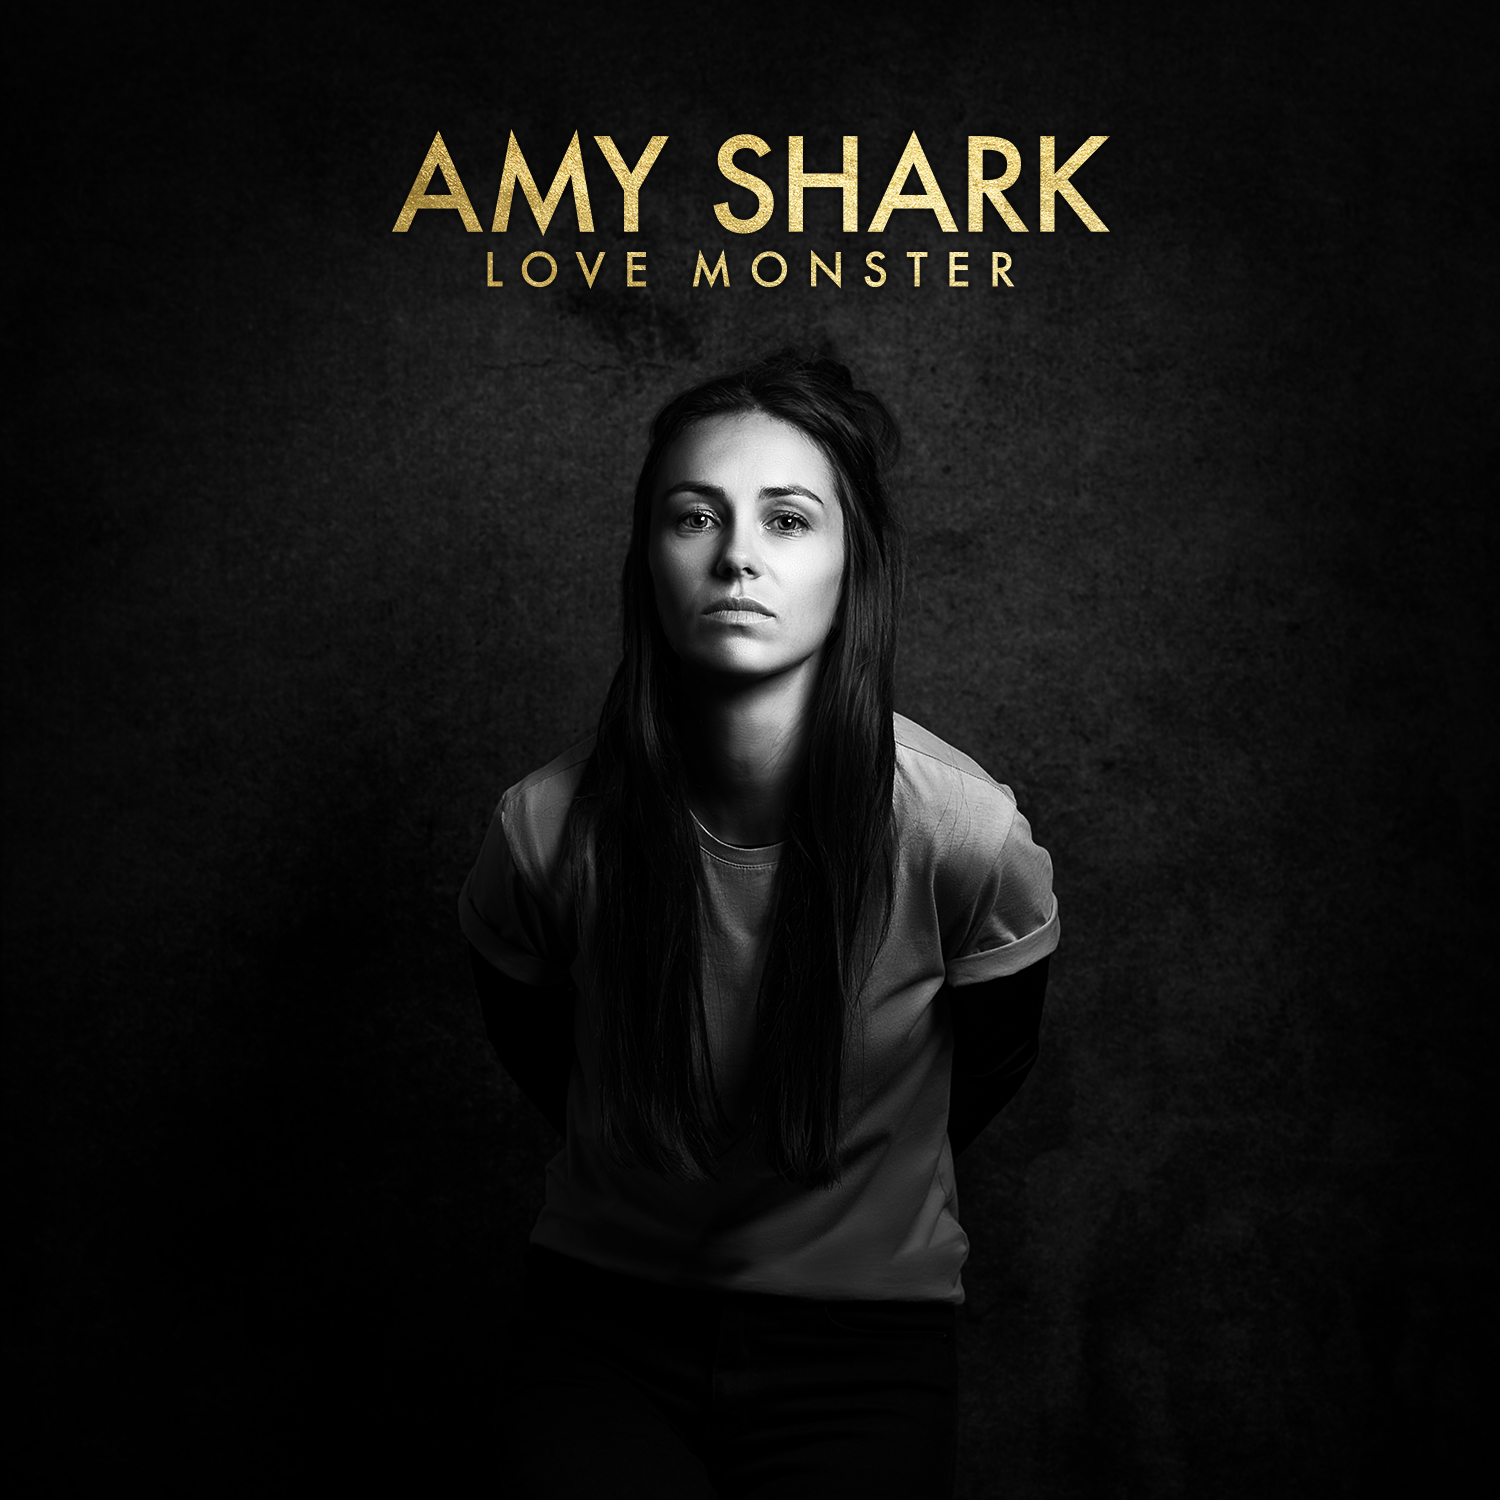 Amy Shark Leave Us Alone (2018) from debut Album - Love Monster   Produced by Edwin White.    ARIA WINNER - Apple Music Album of the Year    ARIA WINNER - Best Pop Release